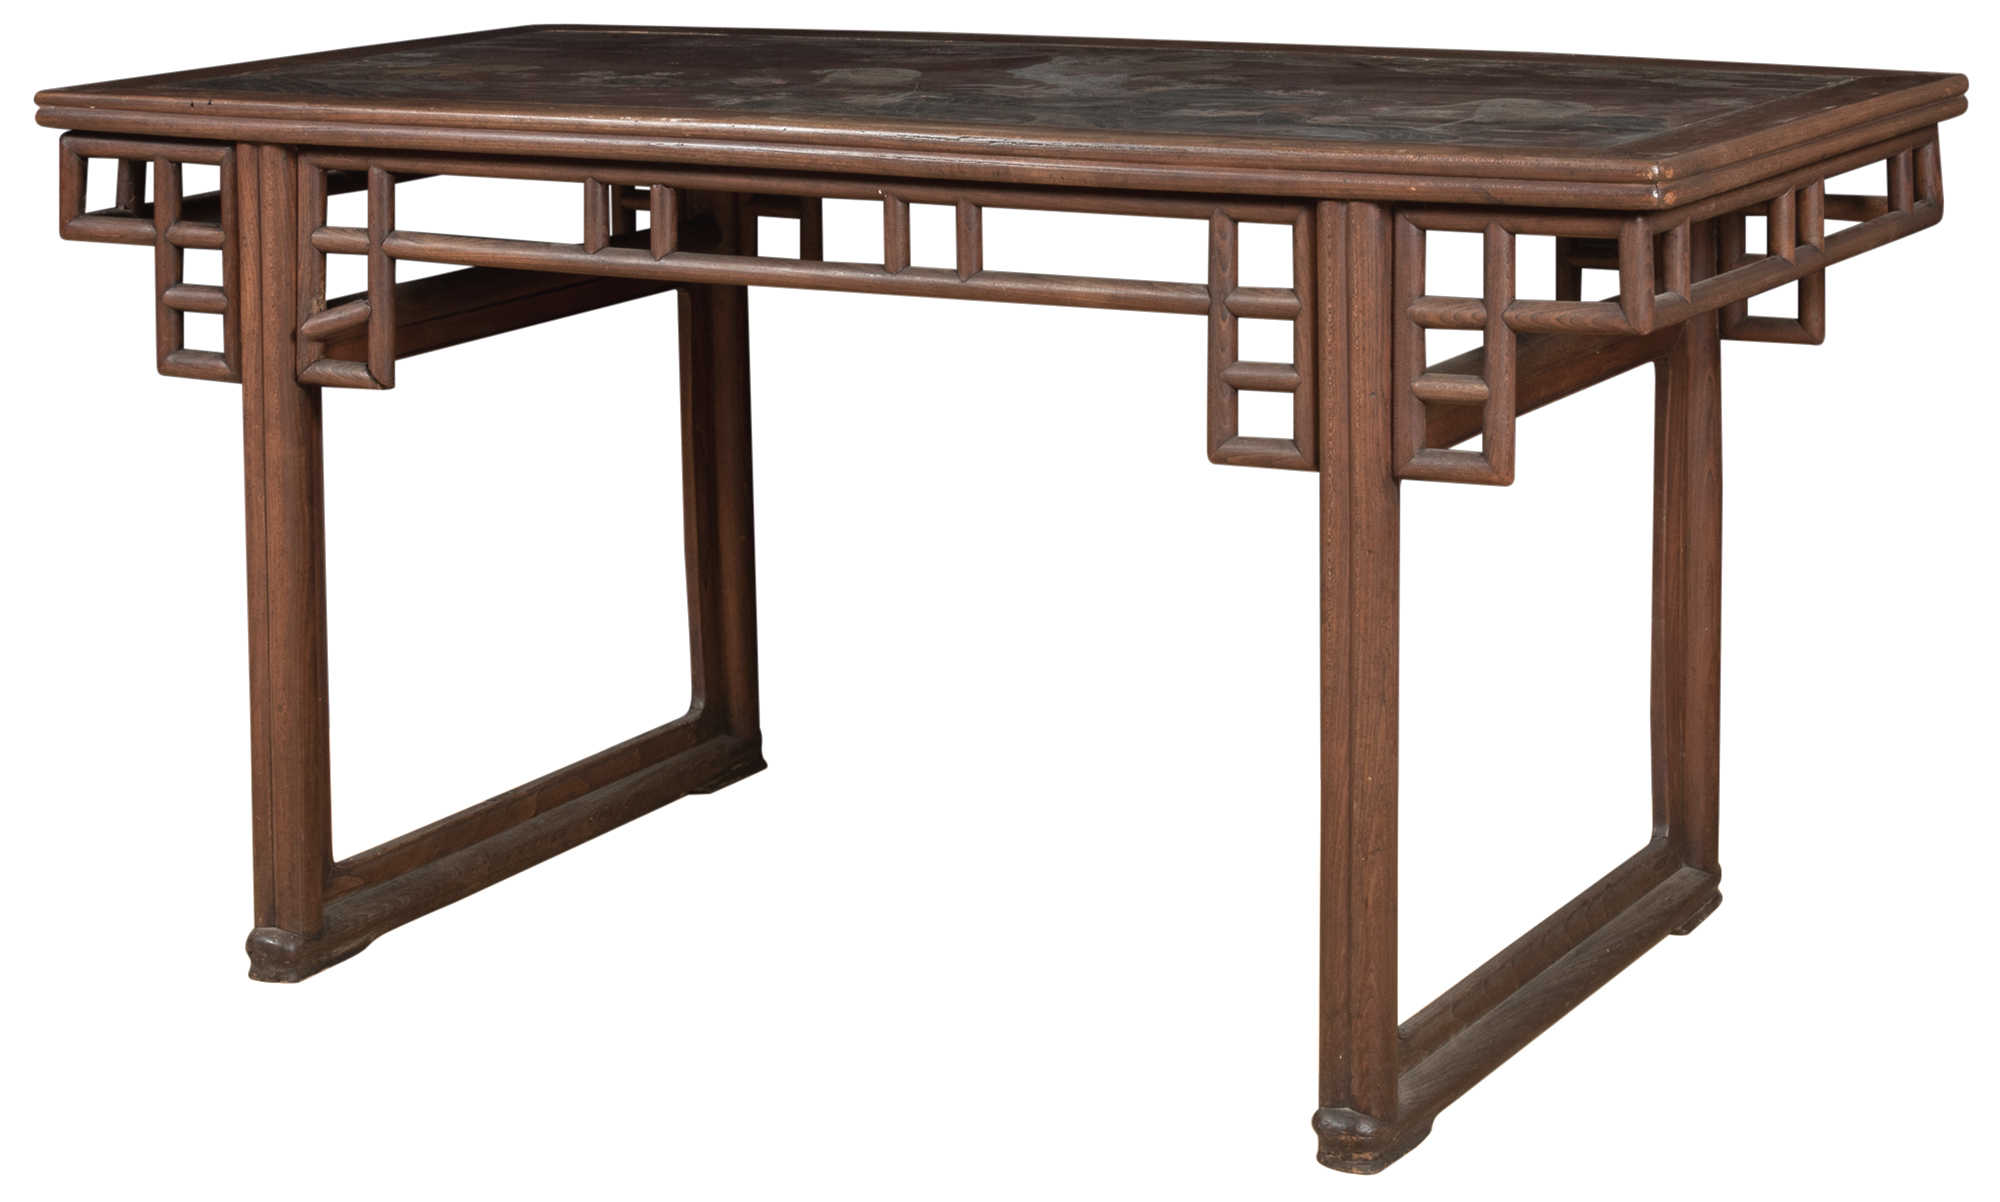 Lot image - A Chinese Hardwood Trestle Leg Table with Inset Lacquer Panel